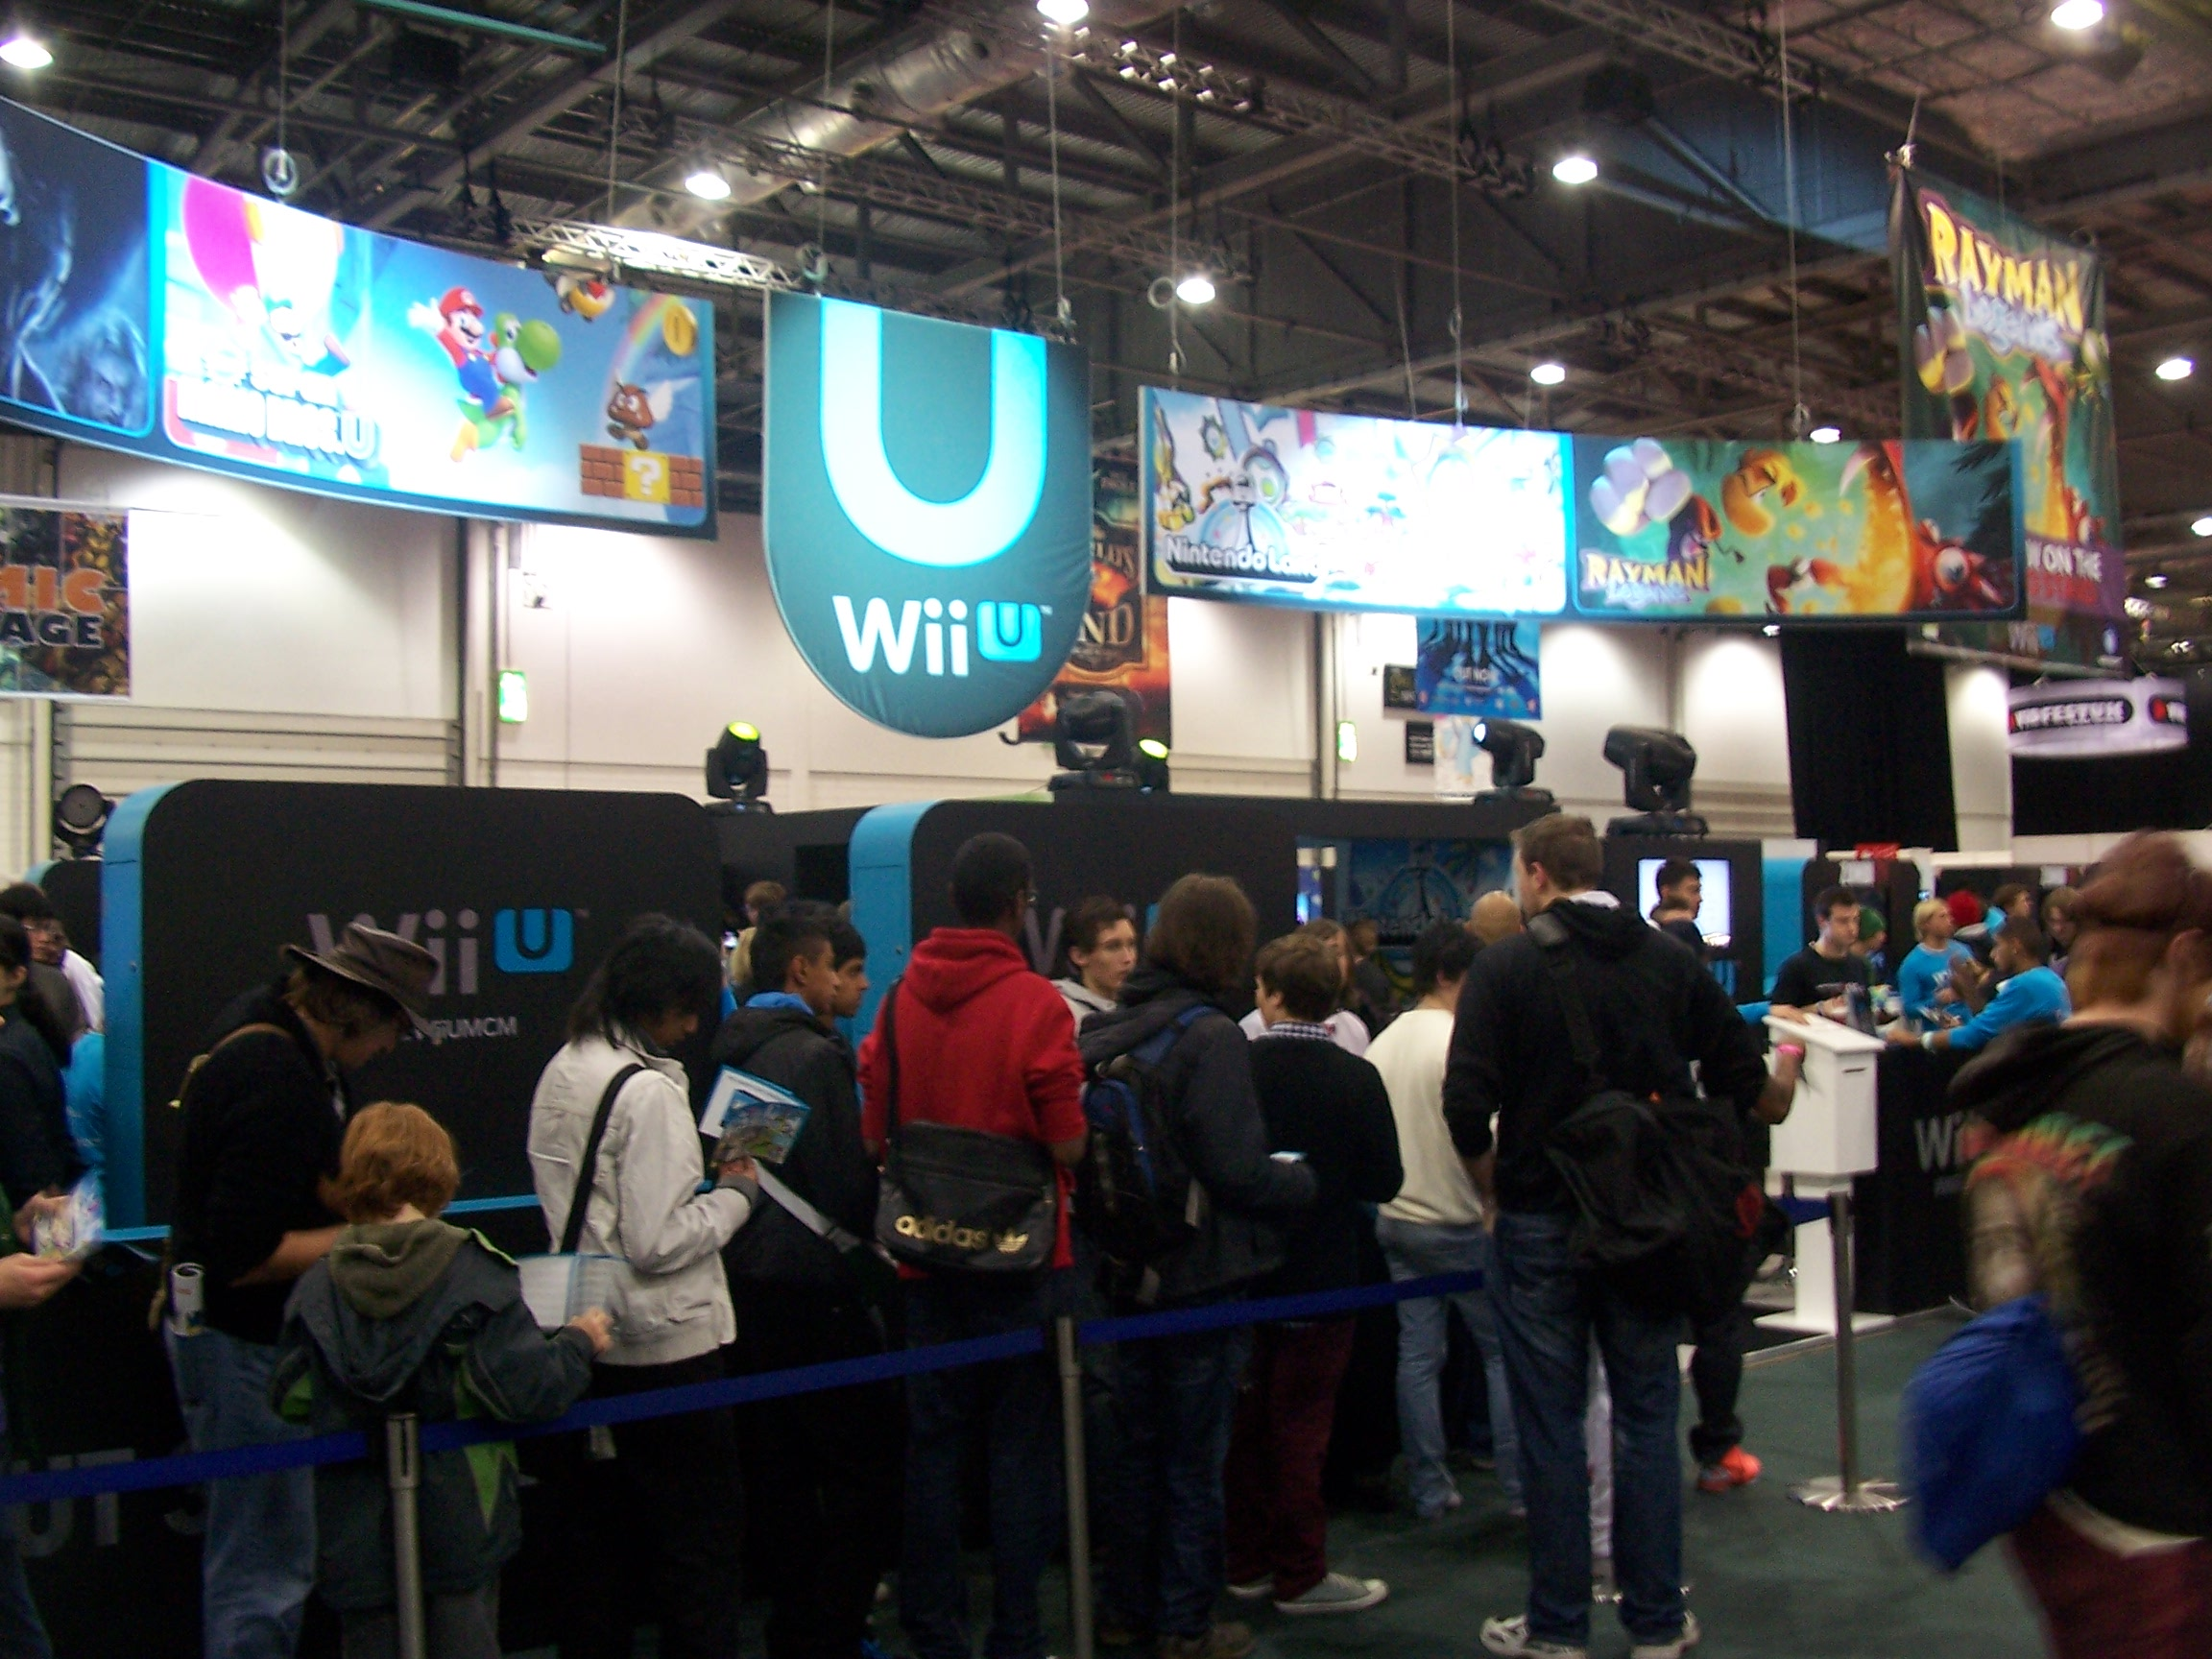 Mcm Expo Stands For : Mcm expo comic con london th october